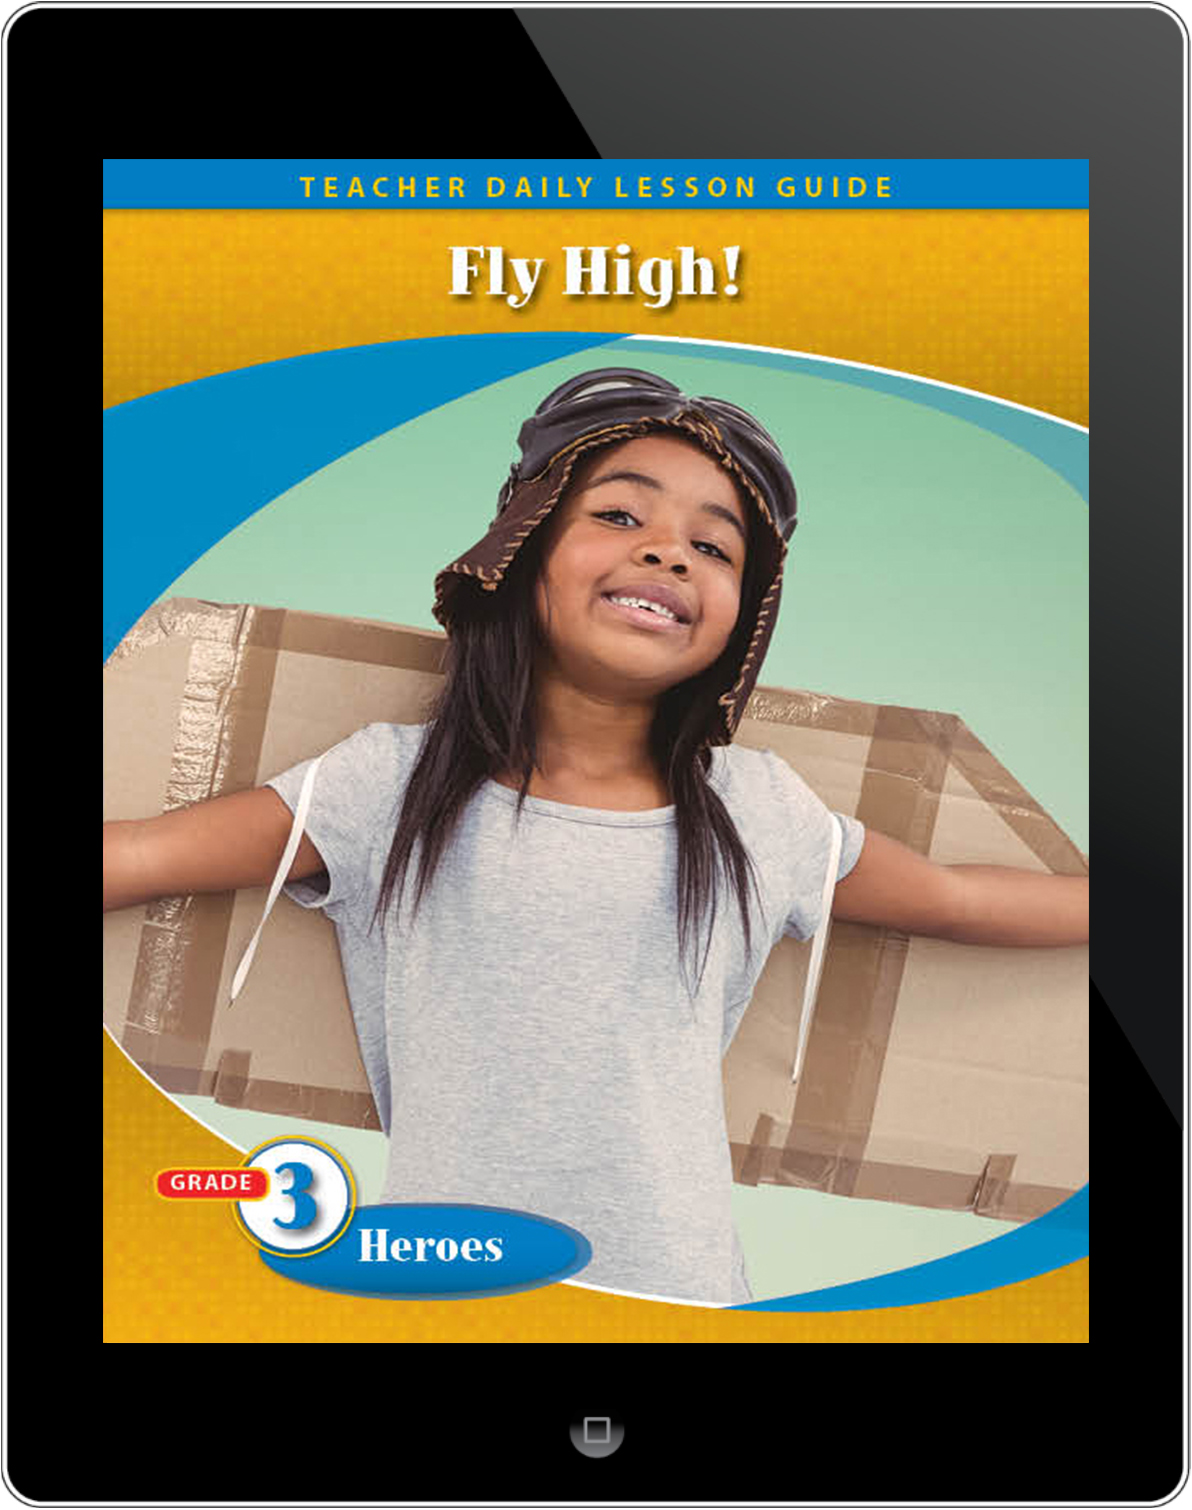 Pathways2.0 Grade 3 Heroes Unit: Fly High! The Story of Bessie Coleman Daily Lesson Guide 5 Year License